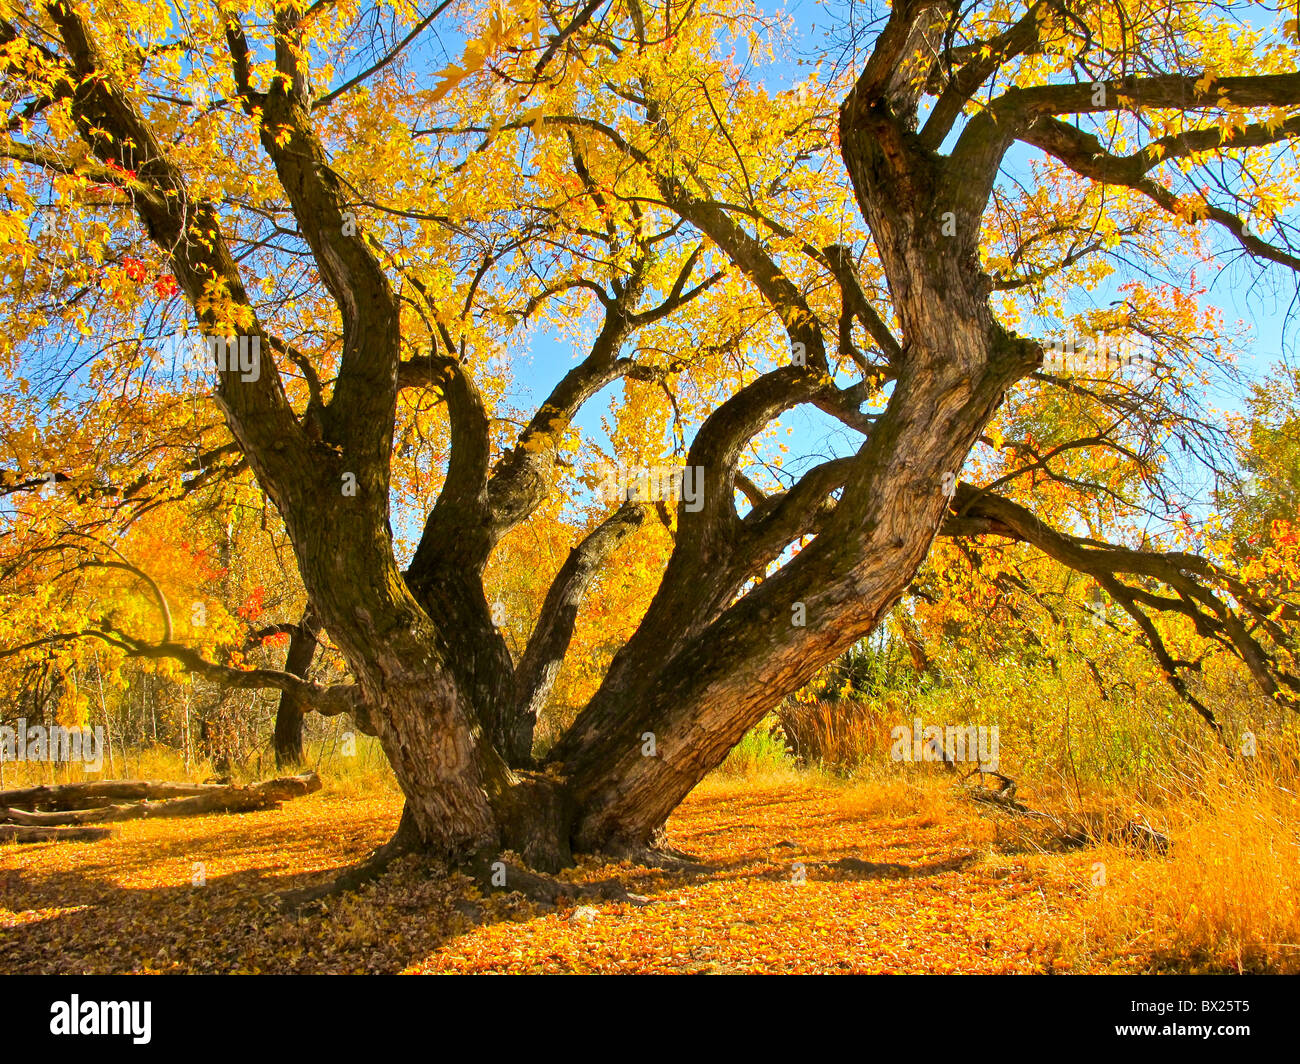 USA, Boise, Beautiful Maple tree on the Boise River Greenbelt in the fall. - Stock Image